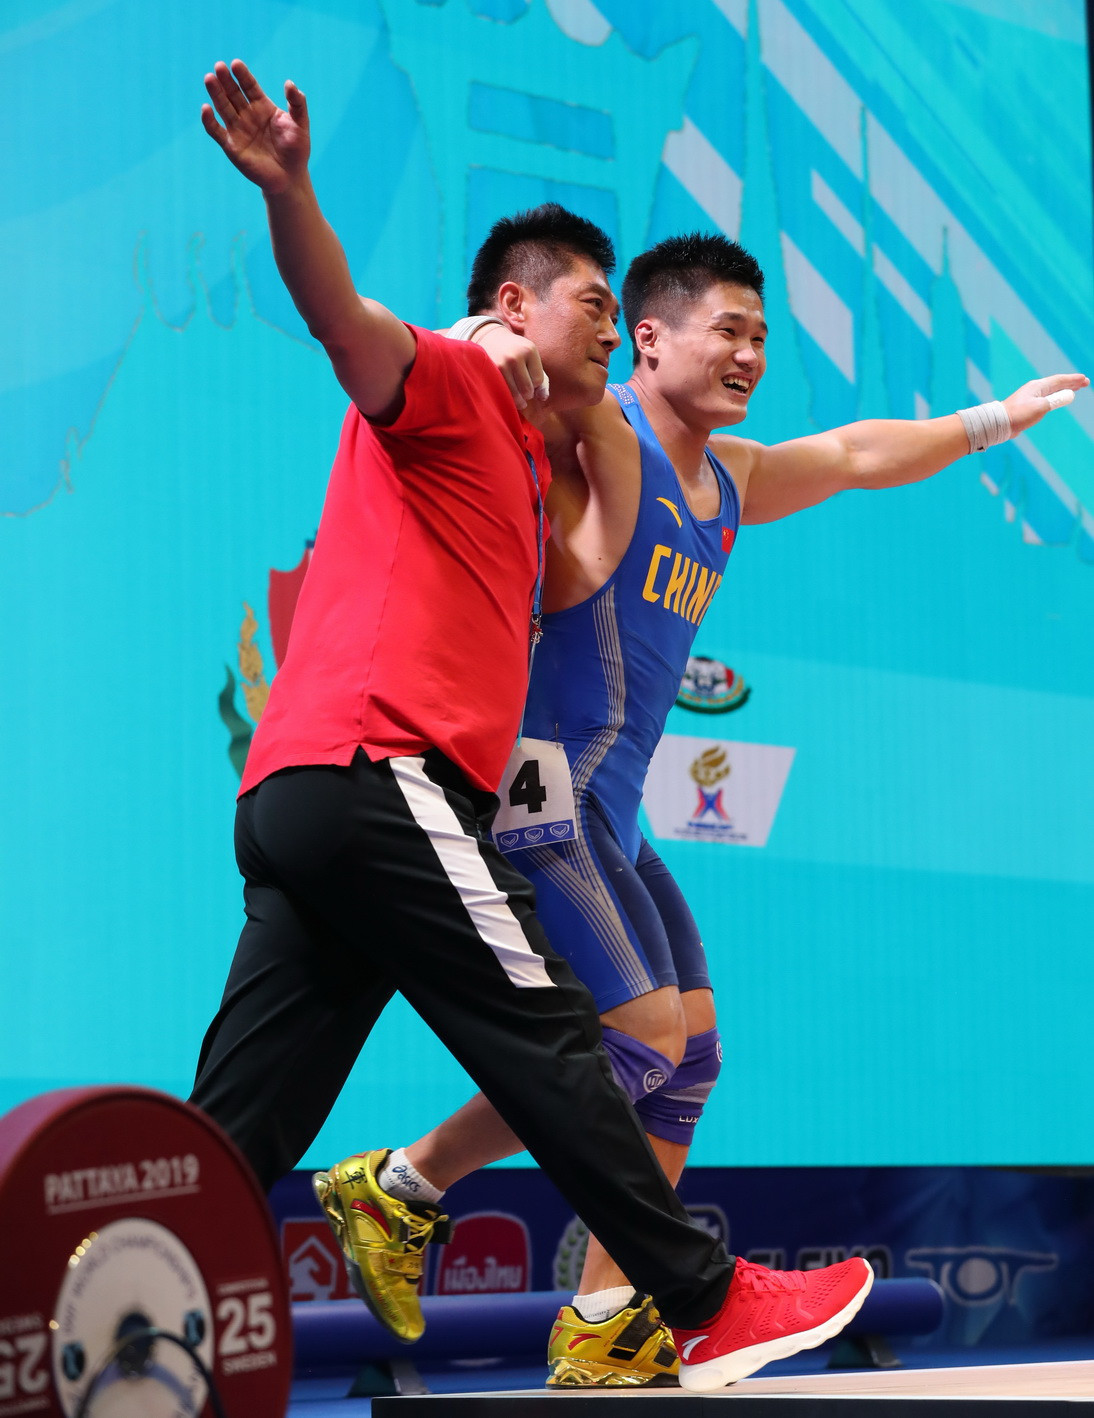 Despite having obvious back pains, Lyu broke the men's 81 kilograms clean and jerk and total world records to seal a clean sweep of the weight category's titles ©IWF